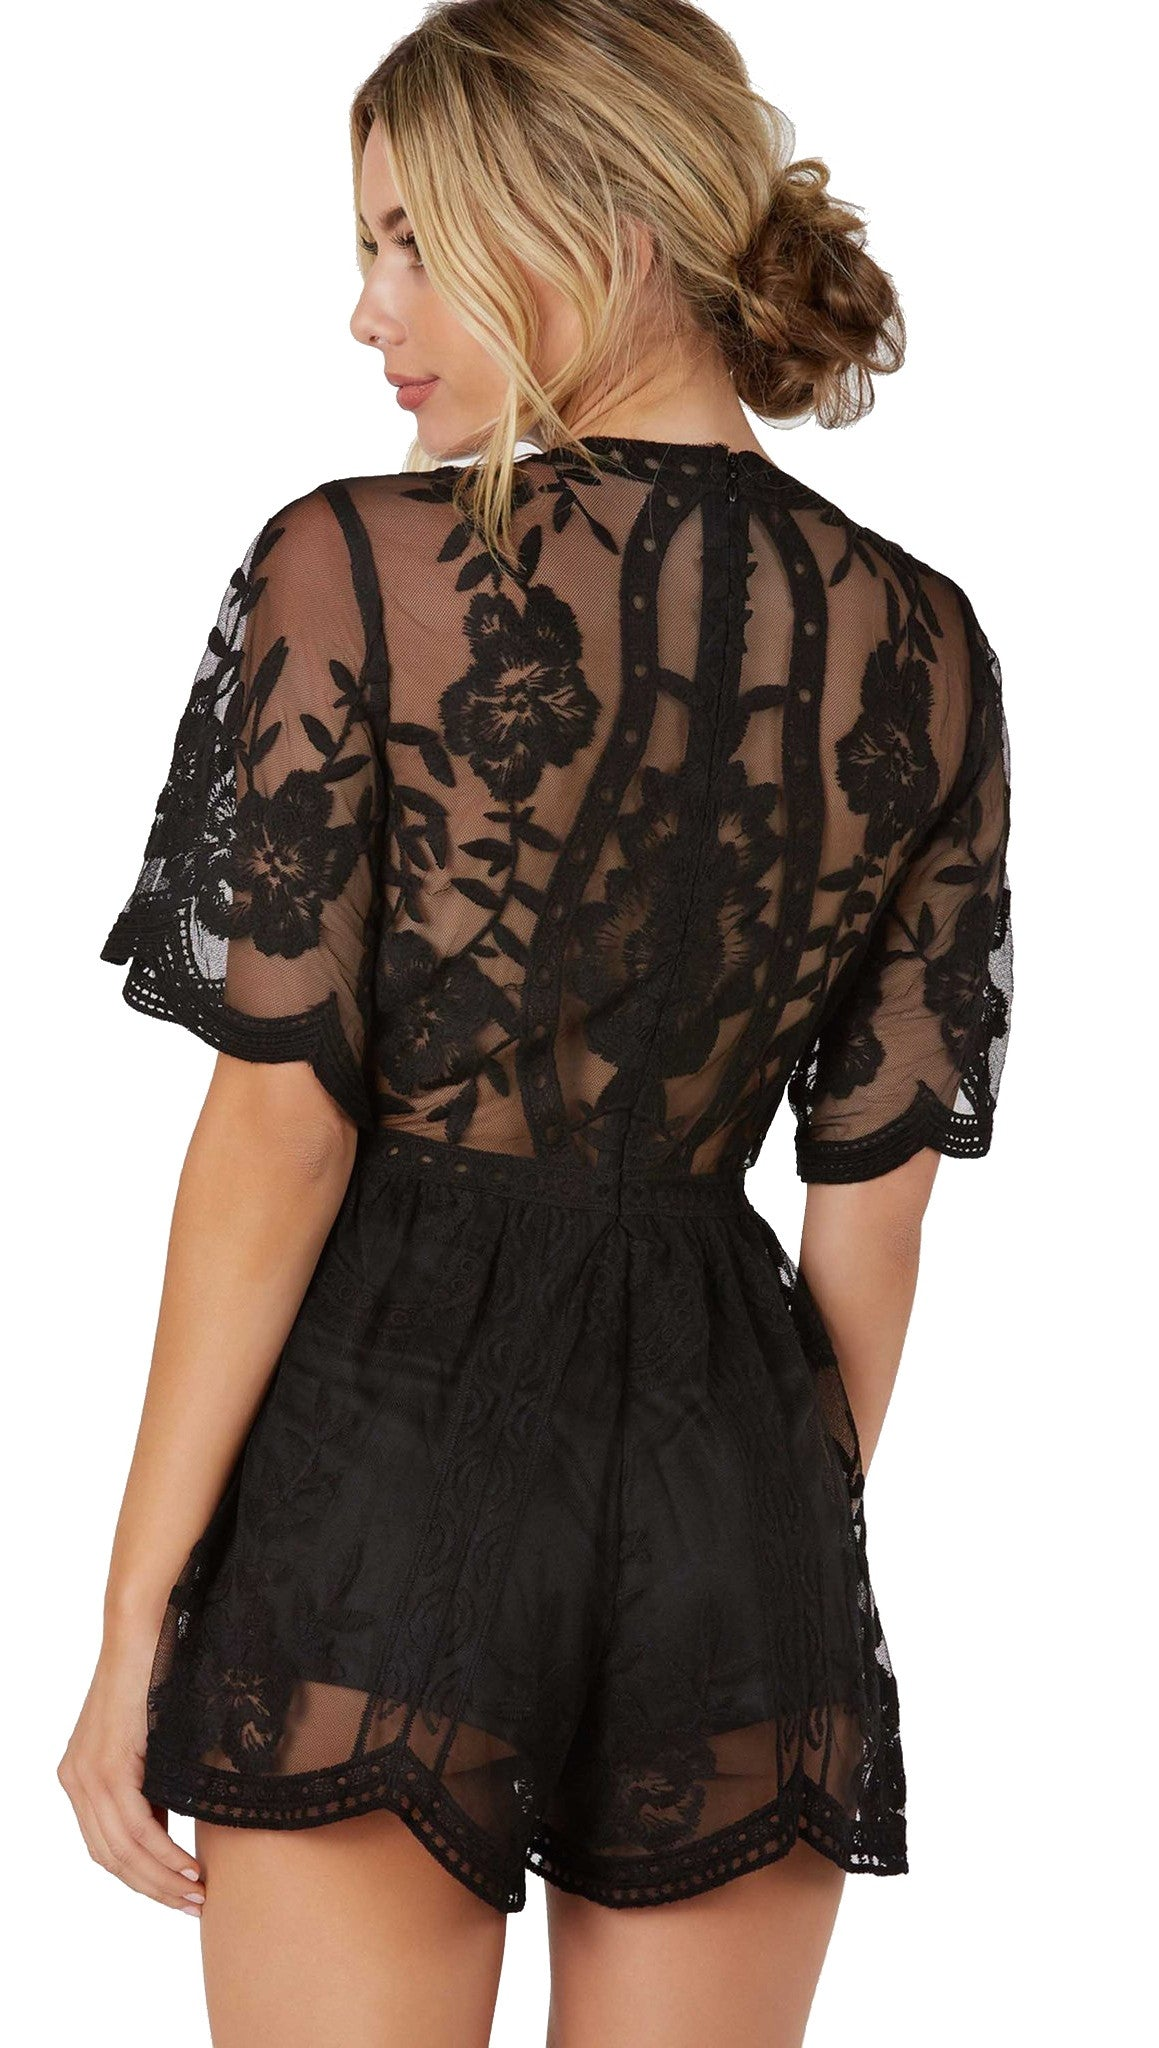 42dbeaea7607 Antique Embroidered Crochet Romper Black Lace from Honey Punch ShopAA